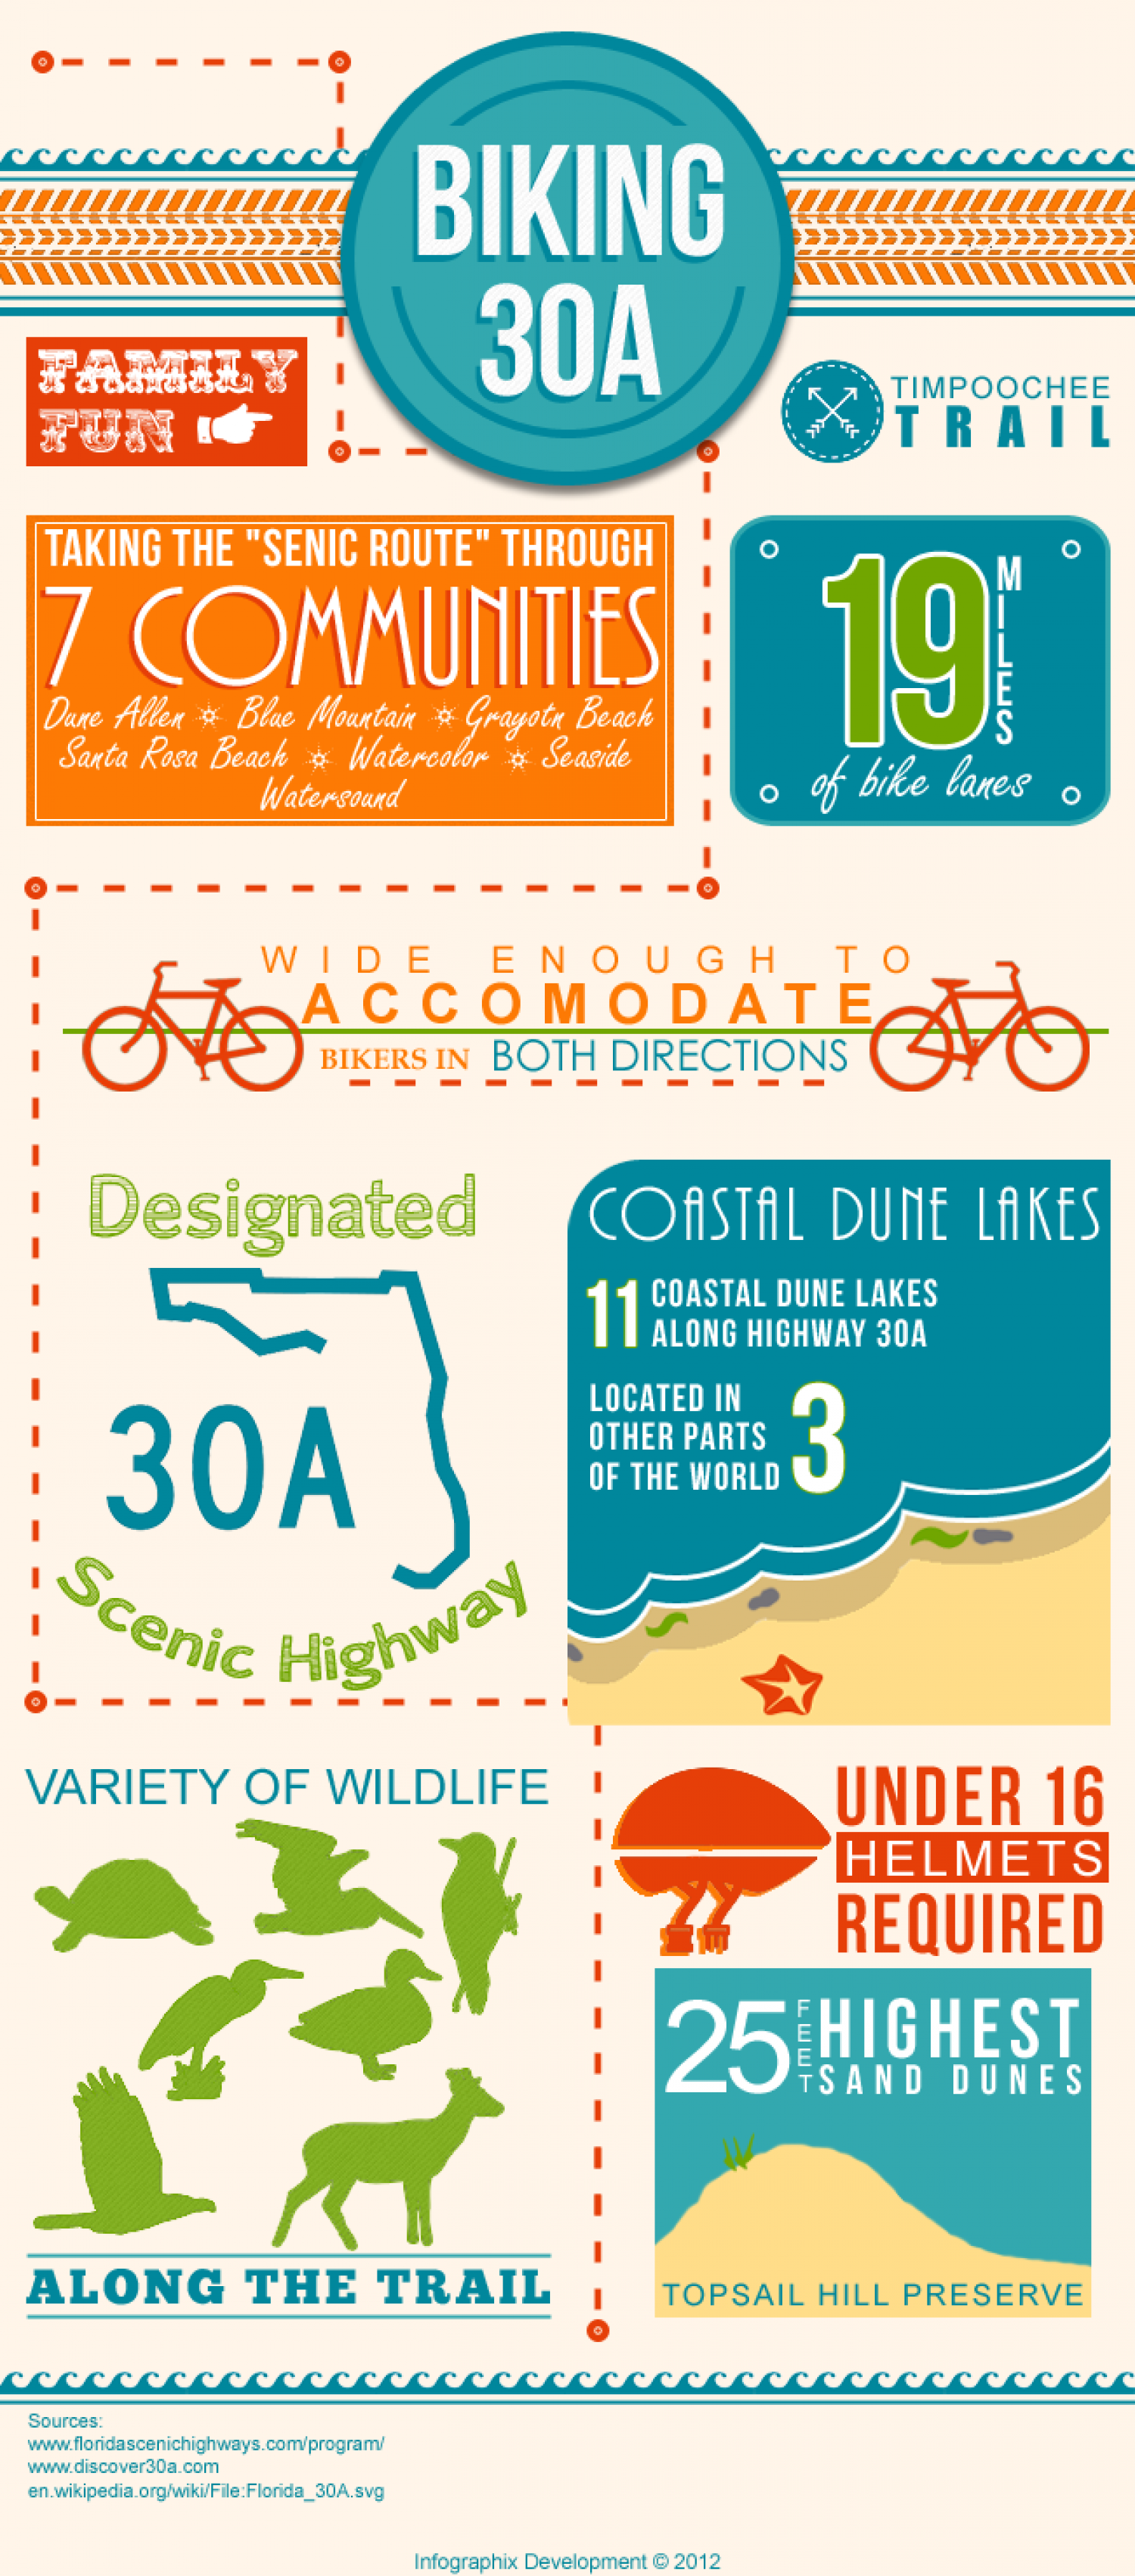 Biking Timpoochee Trail Infographic